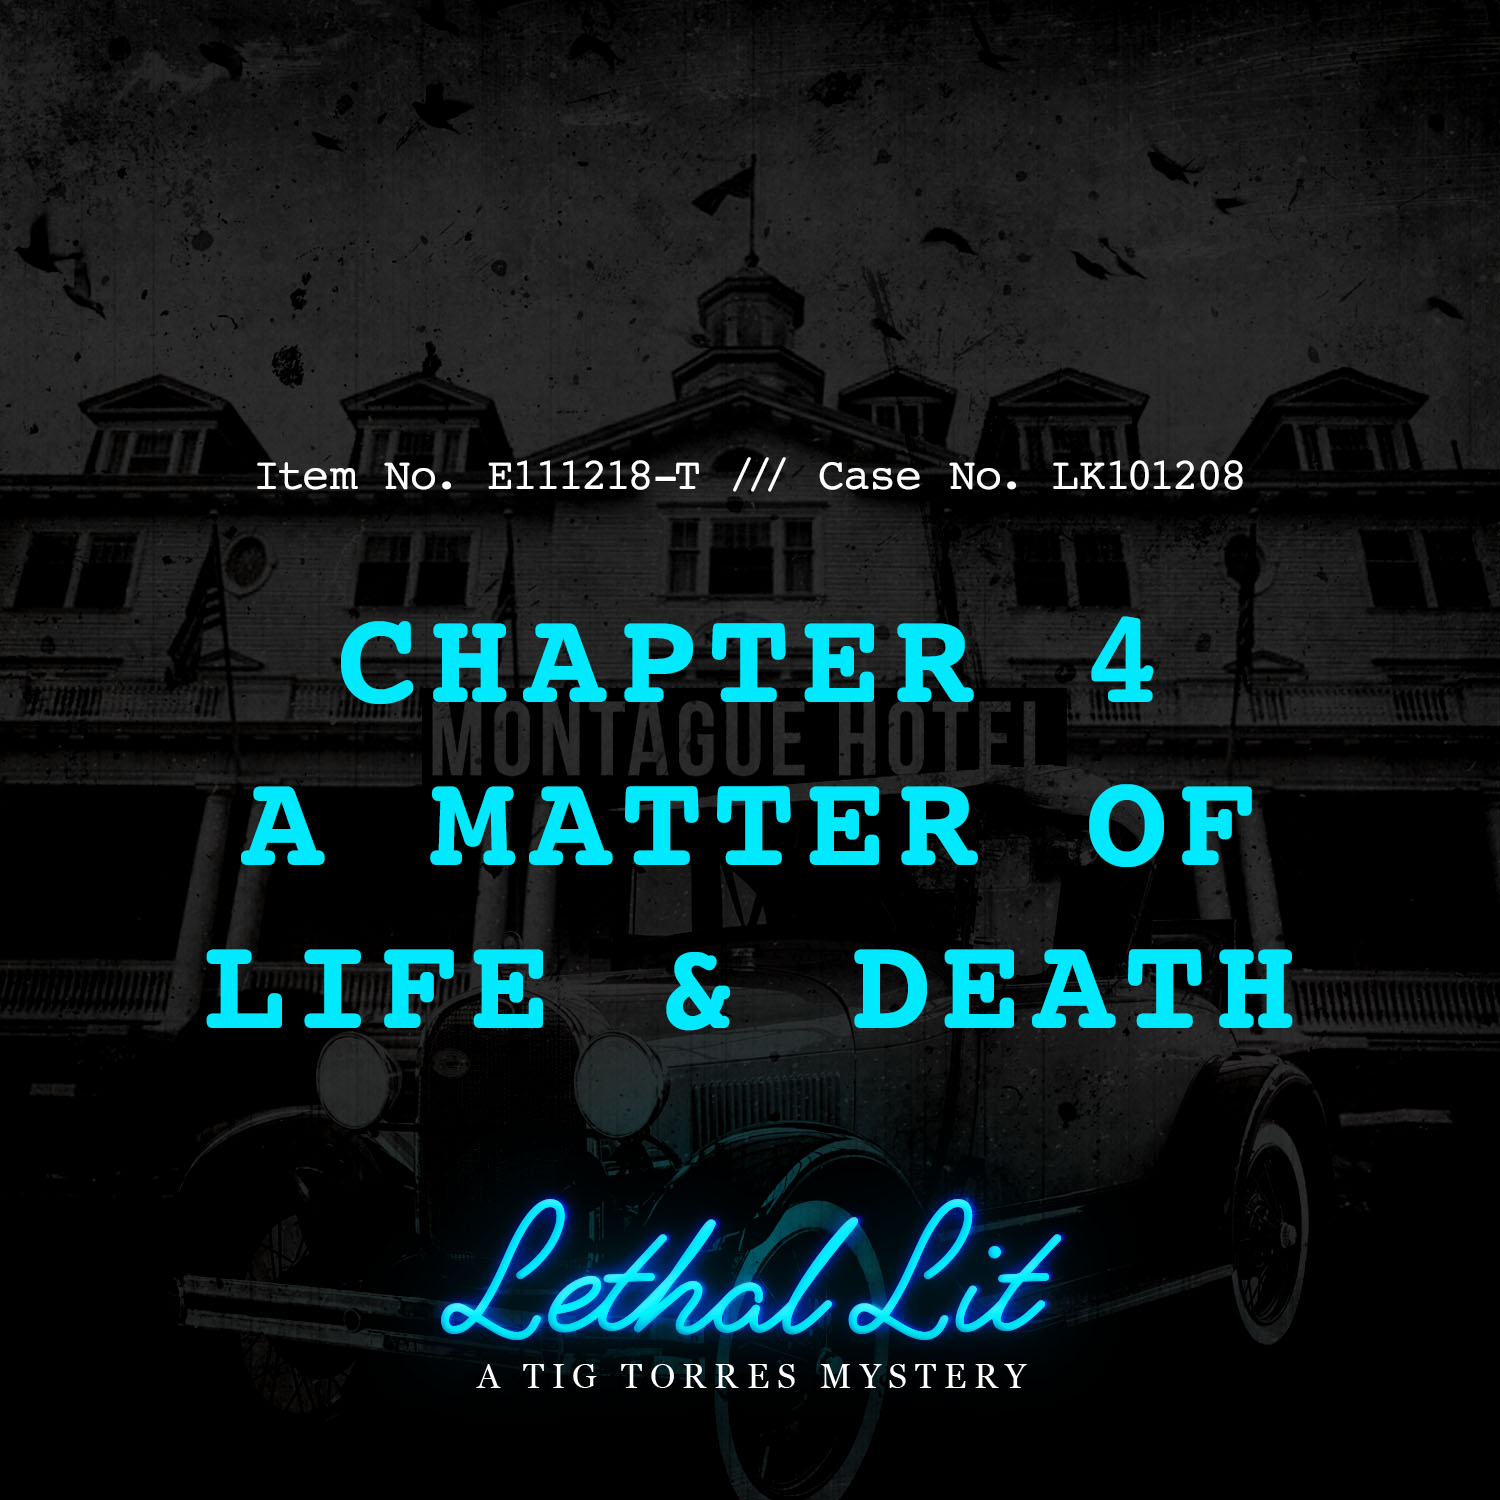 CHAPTER 4: A MATTER OF LIFE & DEATH   LINKS TO LISTEN:   IHeart  |  Apple    |  Spotify  |  Stitcher    |    Google